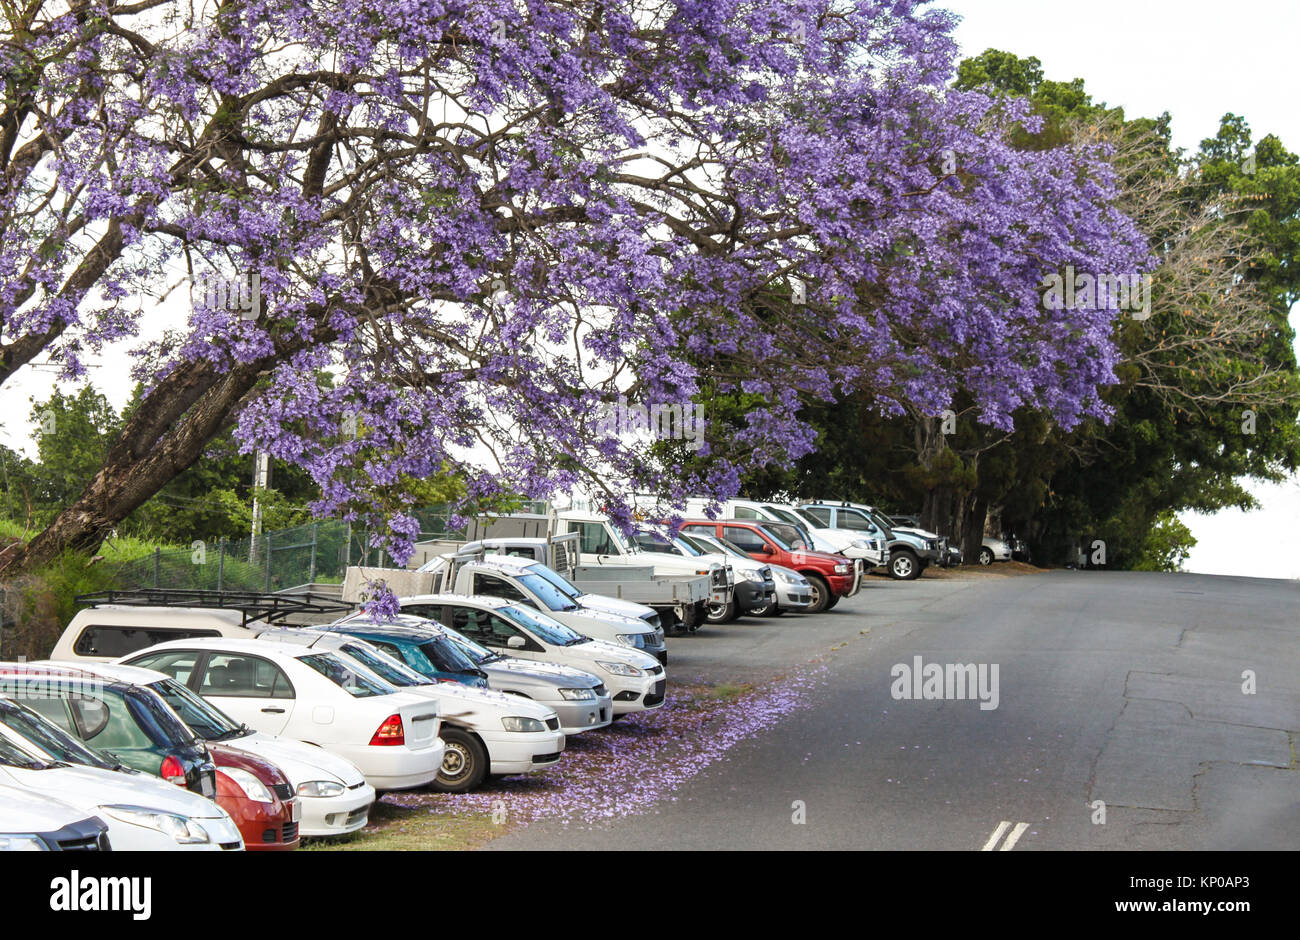 The purple blossoms of the Jacaranda trees falling on cars parked on a hill in Australia - Stock Image